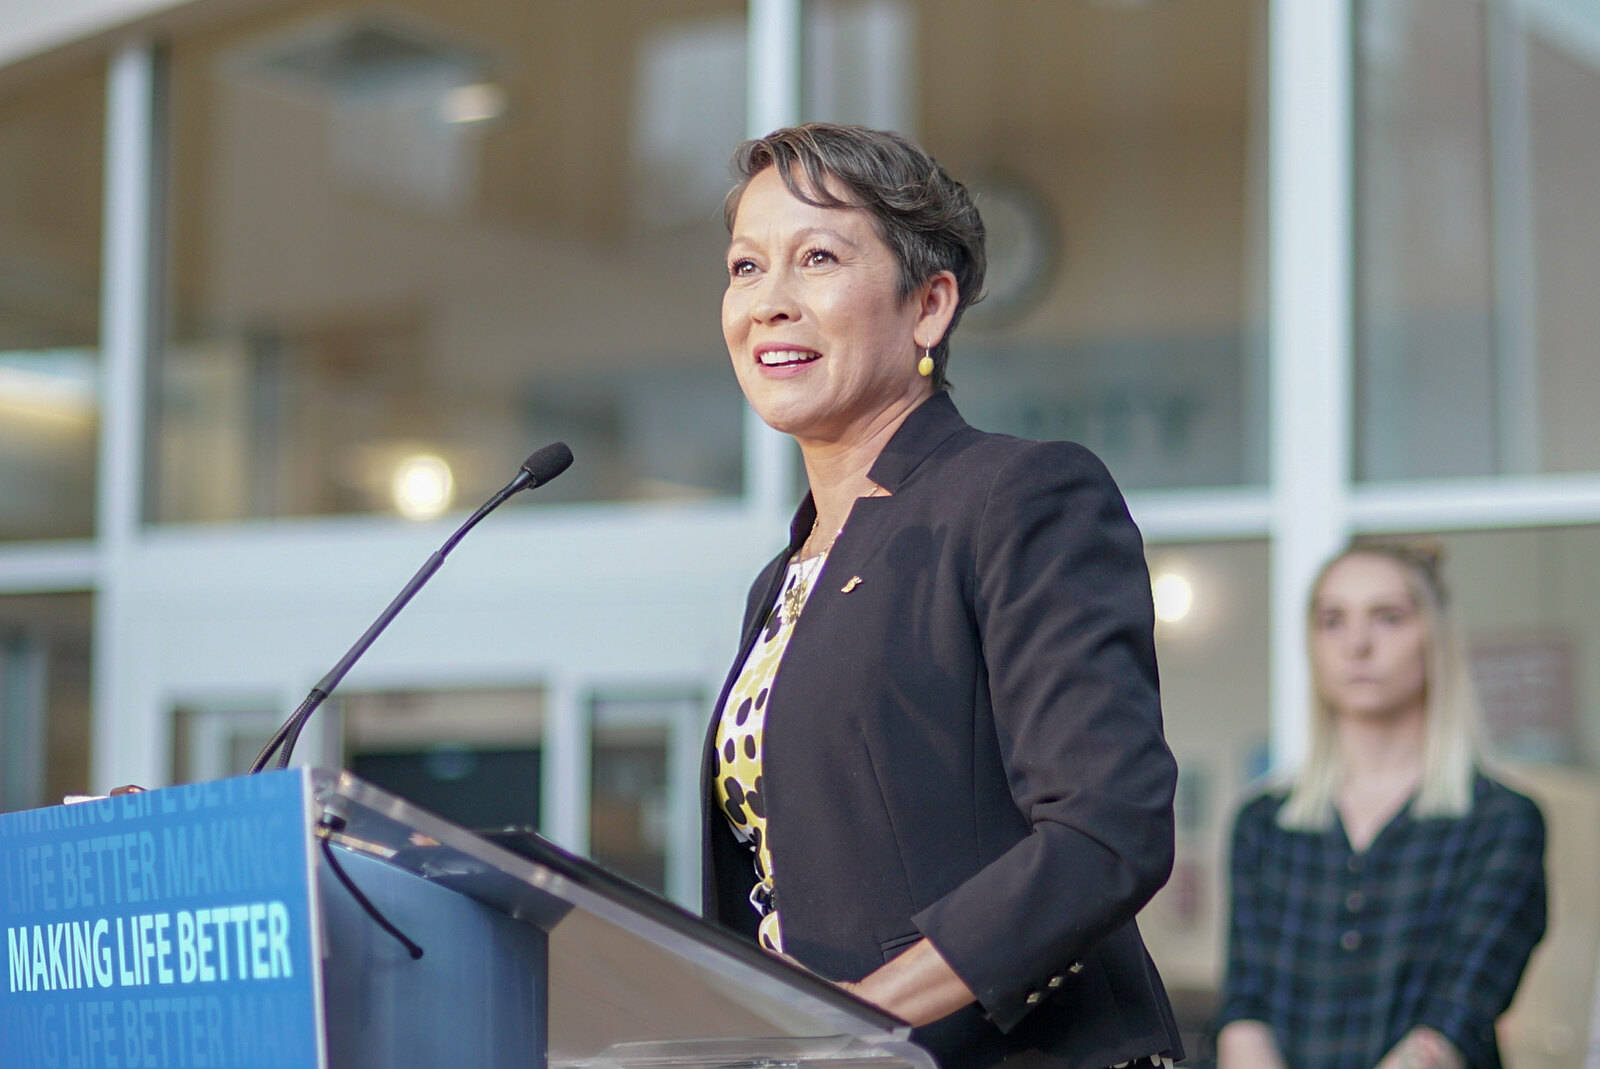 B.C.'s Minister of Advanced Education, Skills and Training Melanie Mark announced a number of new supports for post-secondary students on Wednesday. (B.C. government photo)